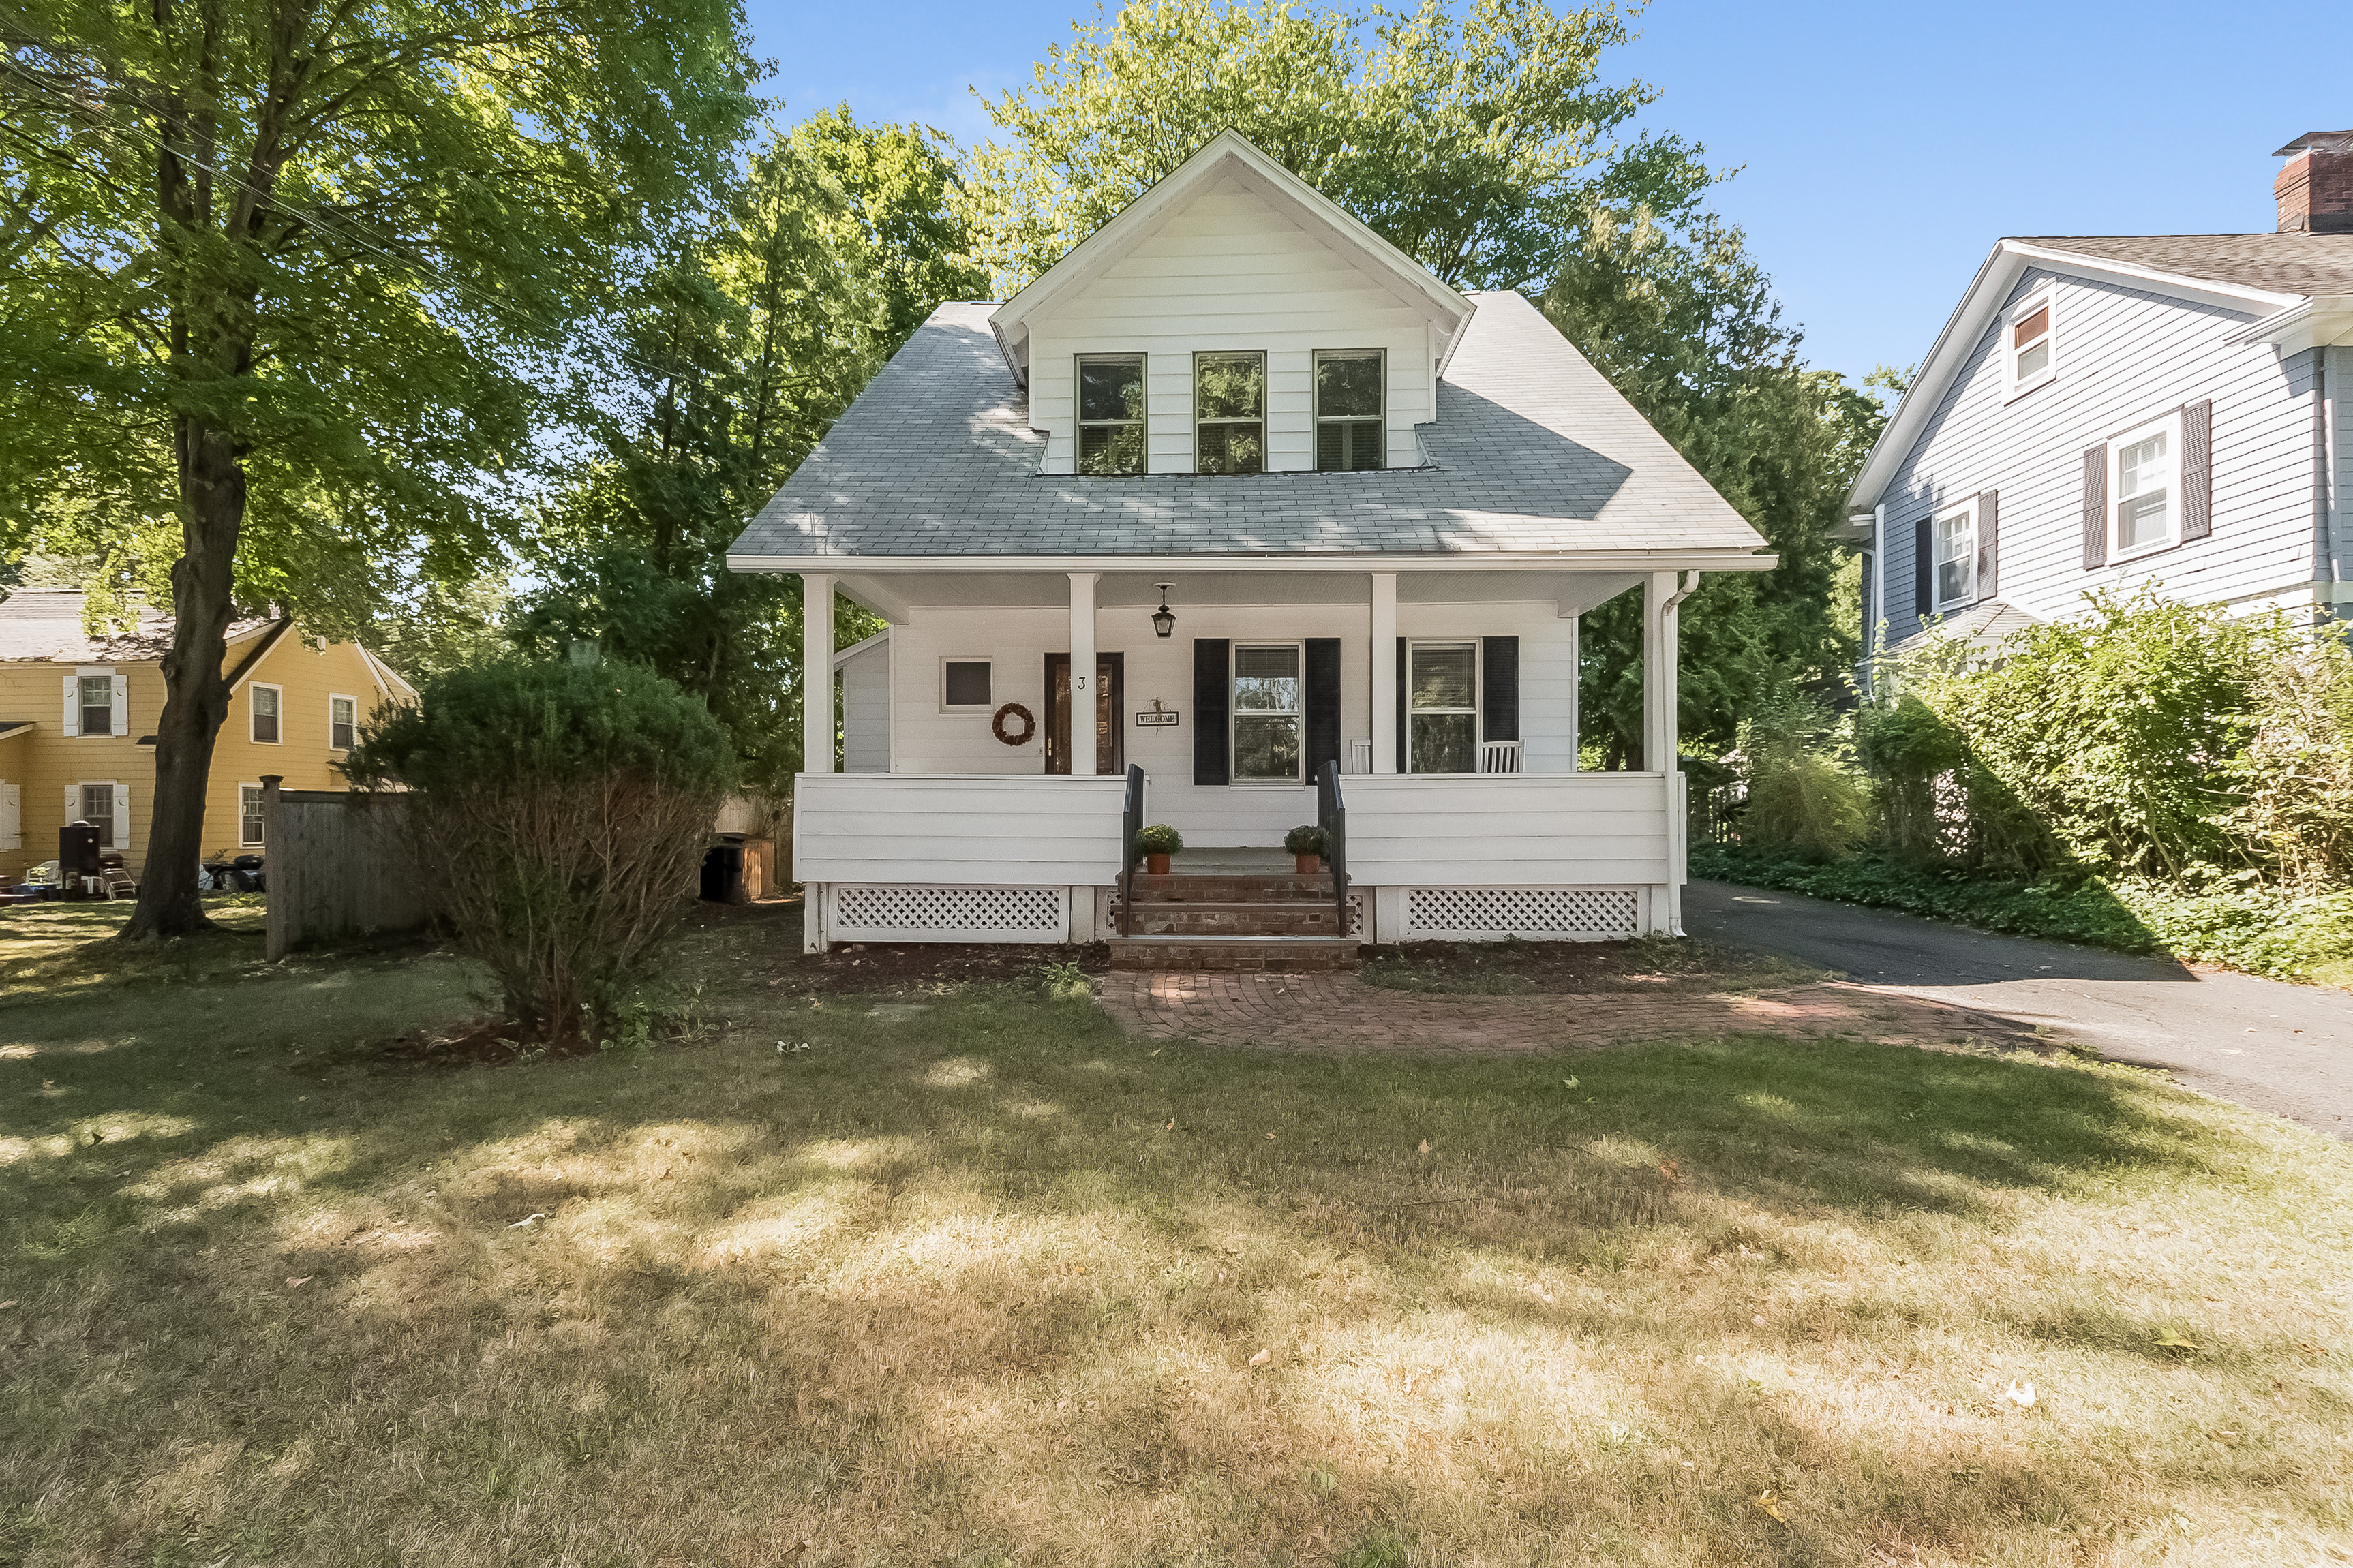 Single Family Home for Sale at 3 Clinton Avenue Westport, Connecticut, 06880 United States